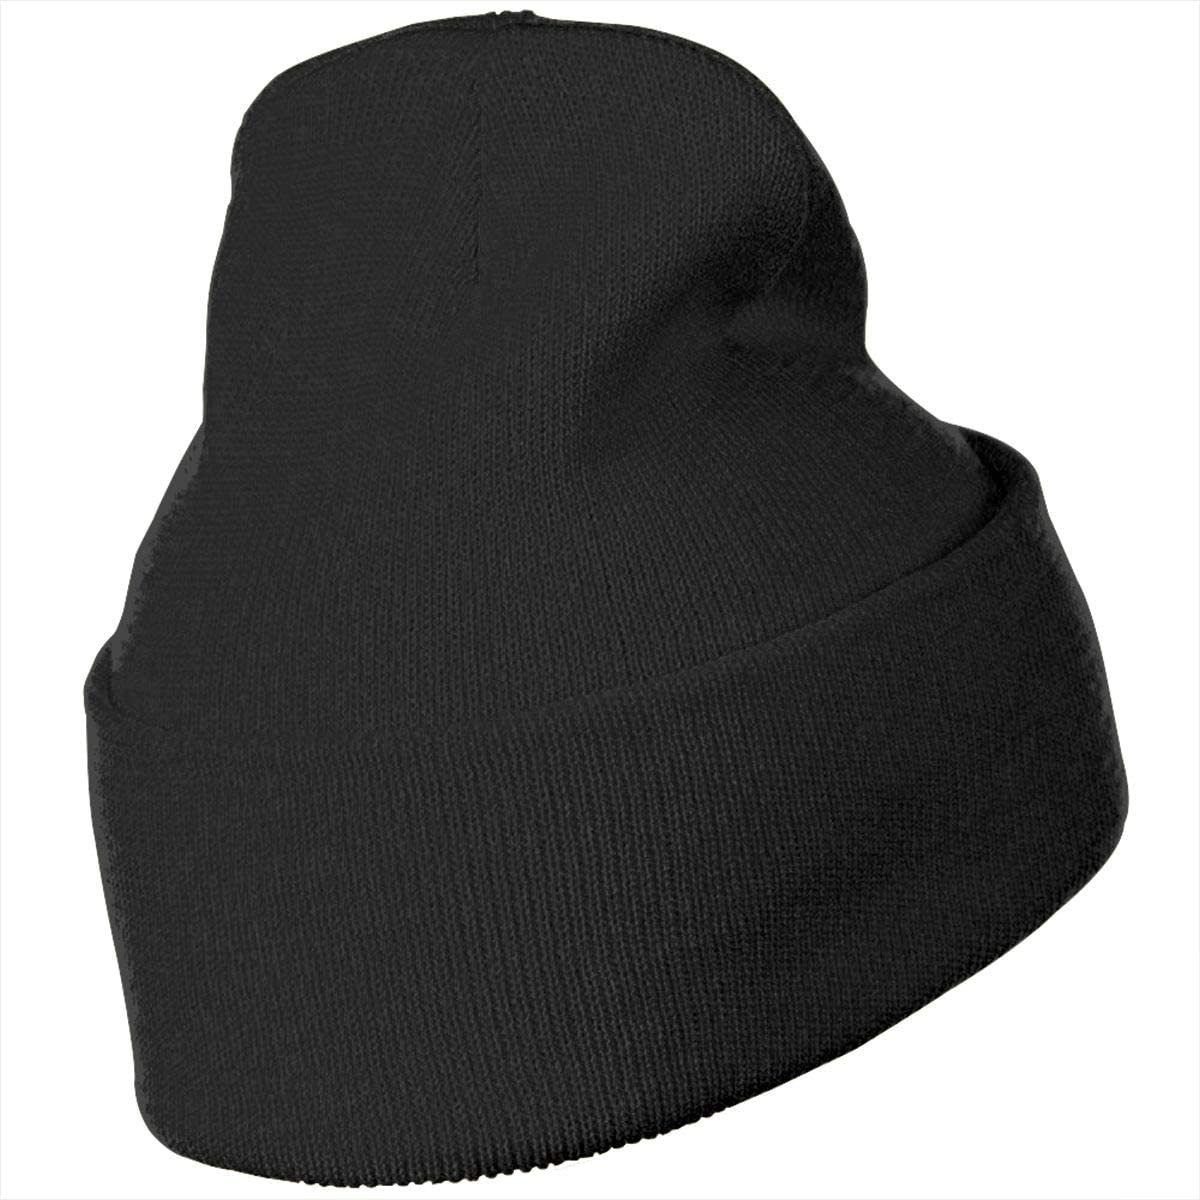 COLLJL-8 Unisex 911 Dispatcher Outdoor Warm Knit Beanies Hat Soft Winter Skull Caps